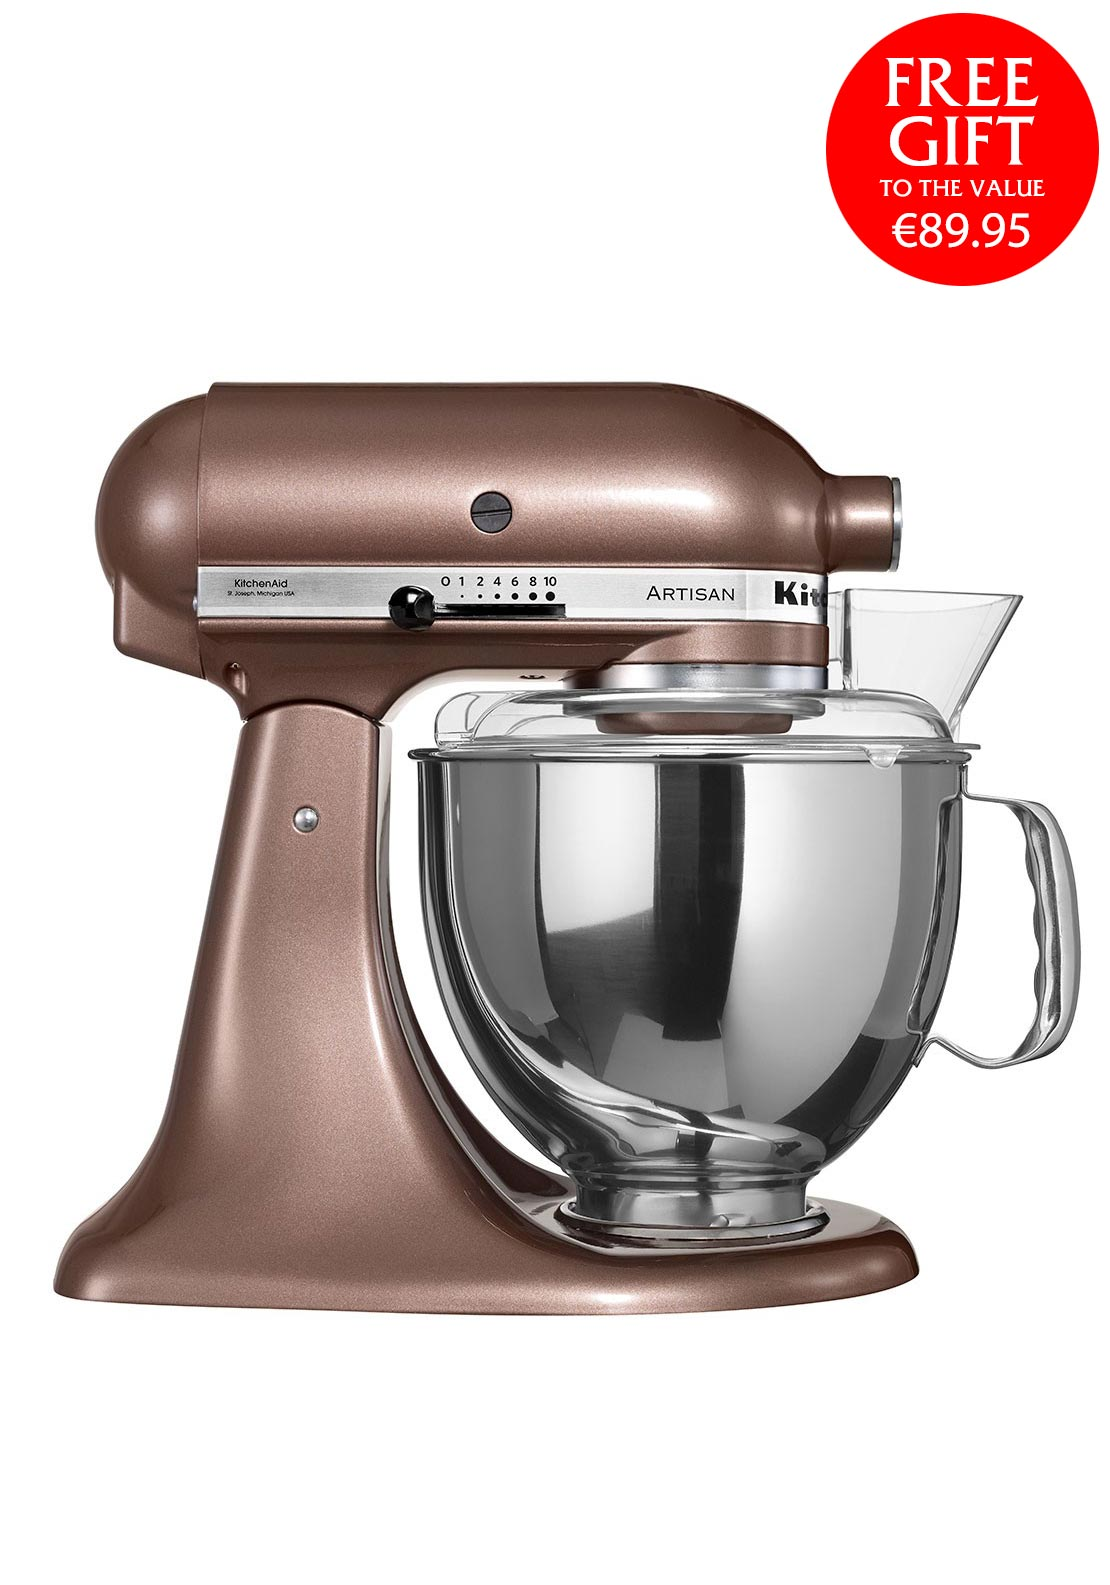 KitchenAid Artisan Tilt Head Stand Mixer, Apple Cider 4.8L